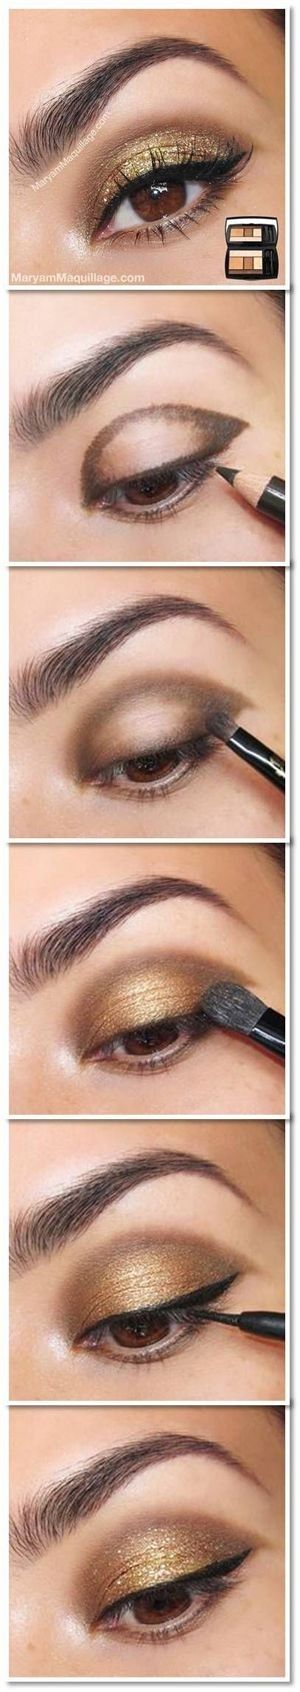 Smokey eye #coupon code nicesup123 gets 25% off at Provestra.com Skinception.com